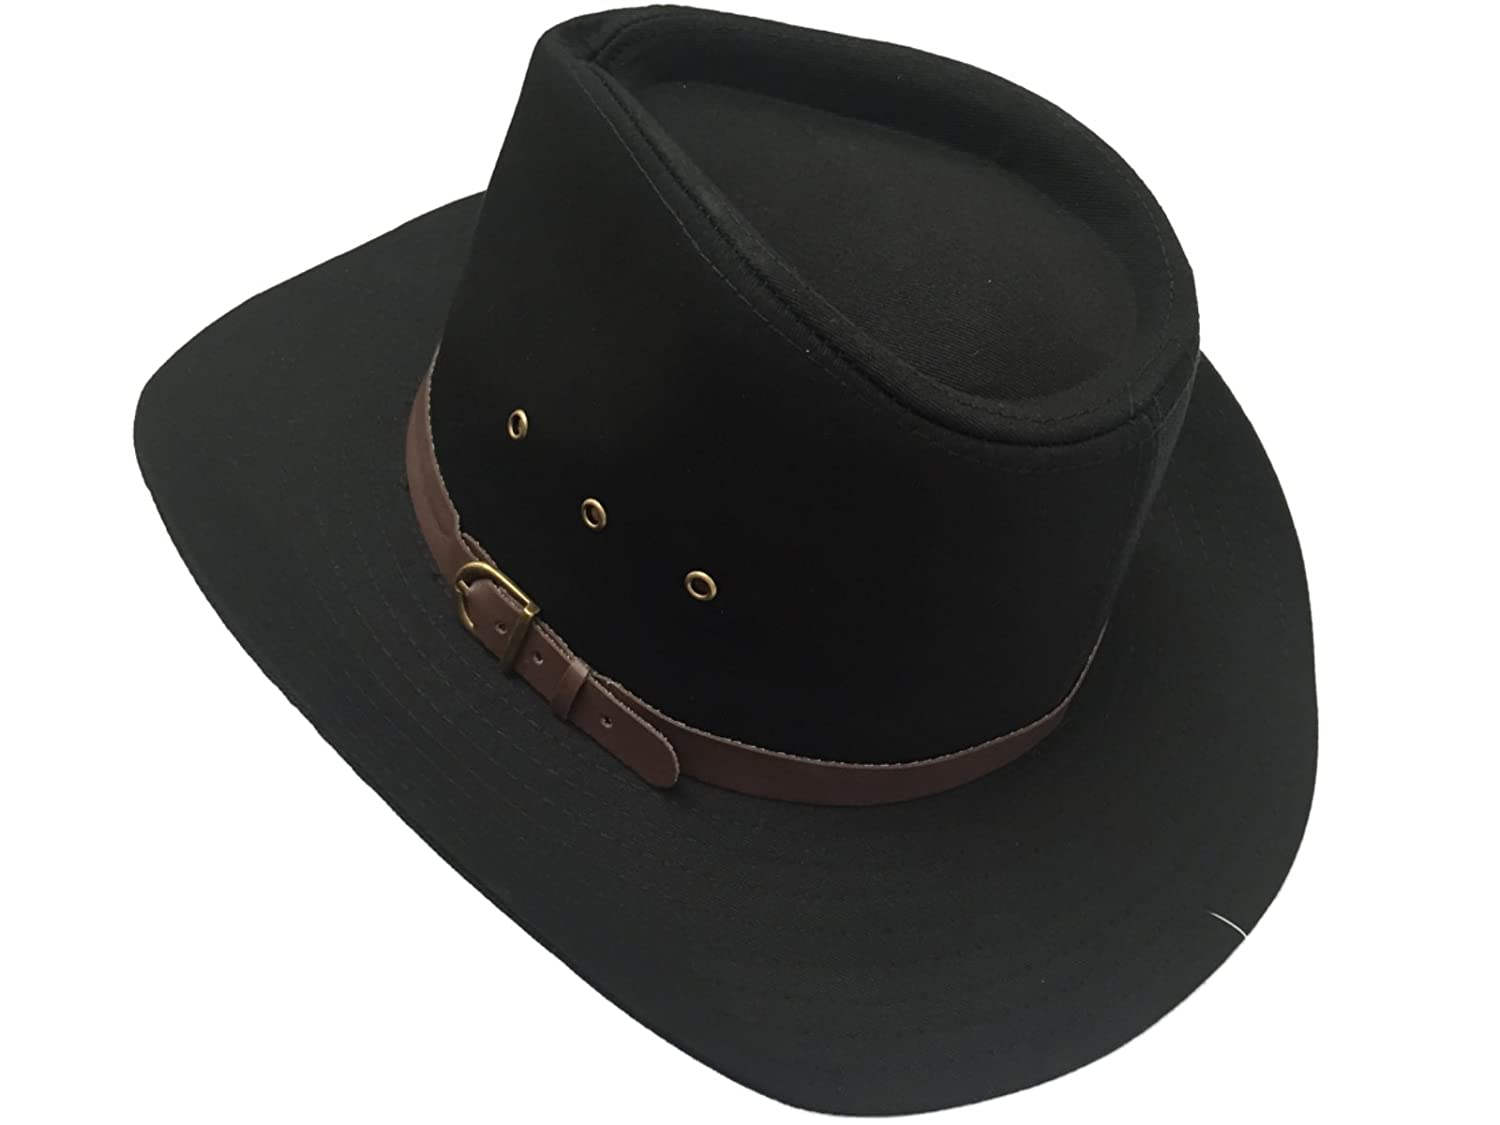 Mens Wide Brim Stetson Cowboy Hat Black or Natural